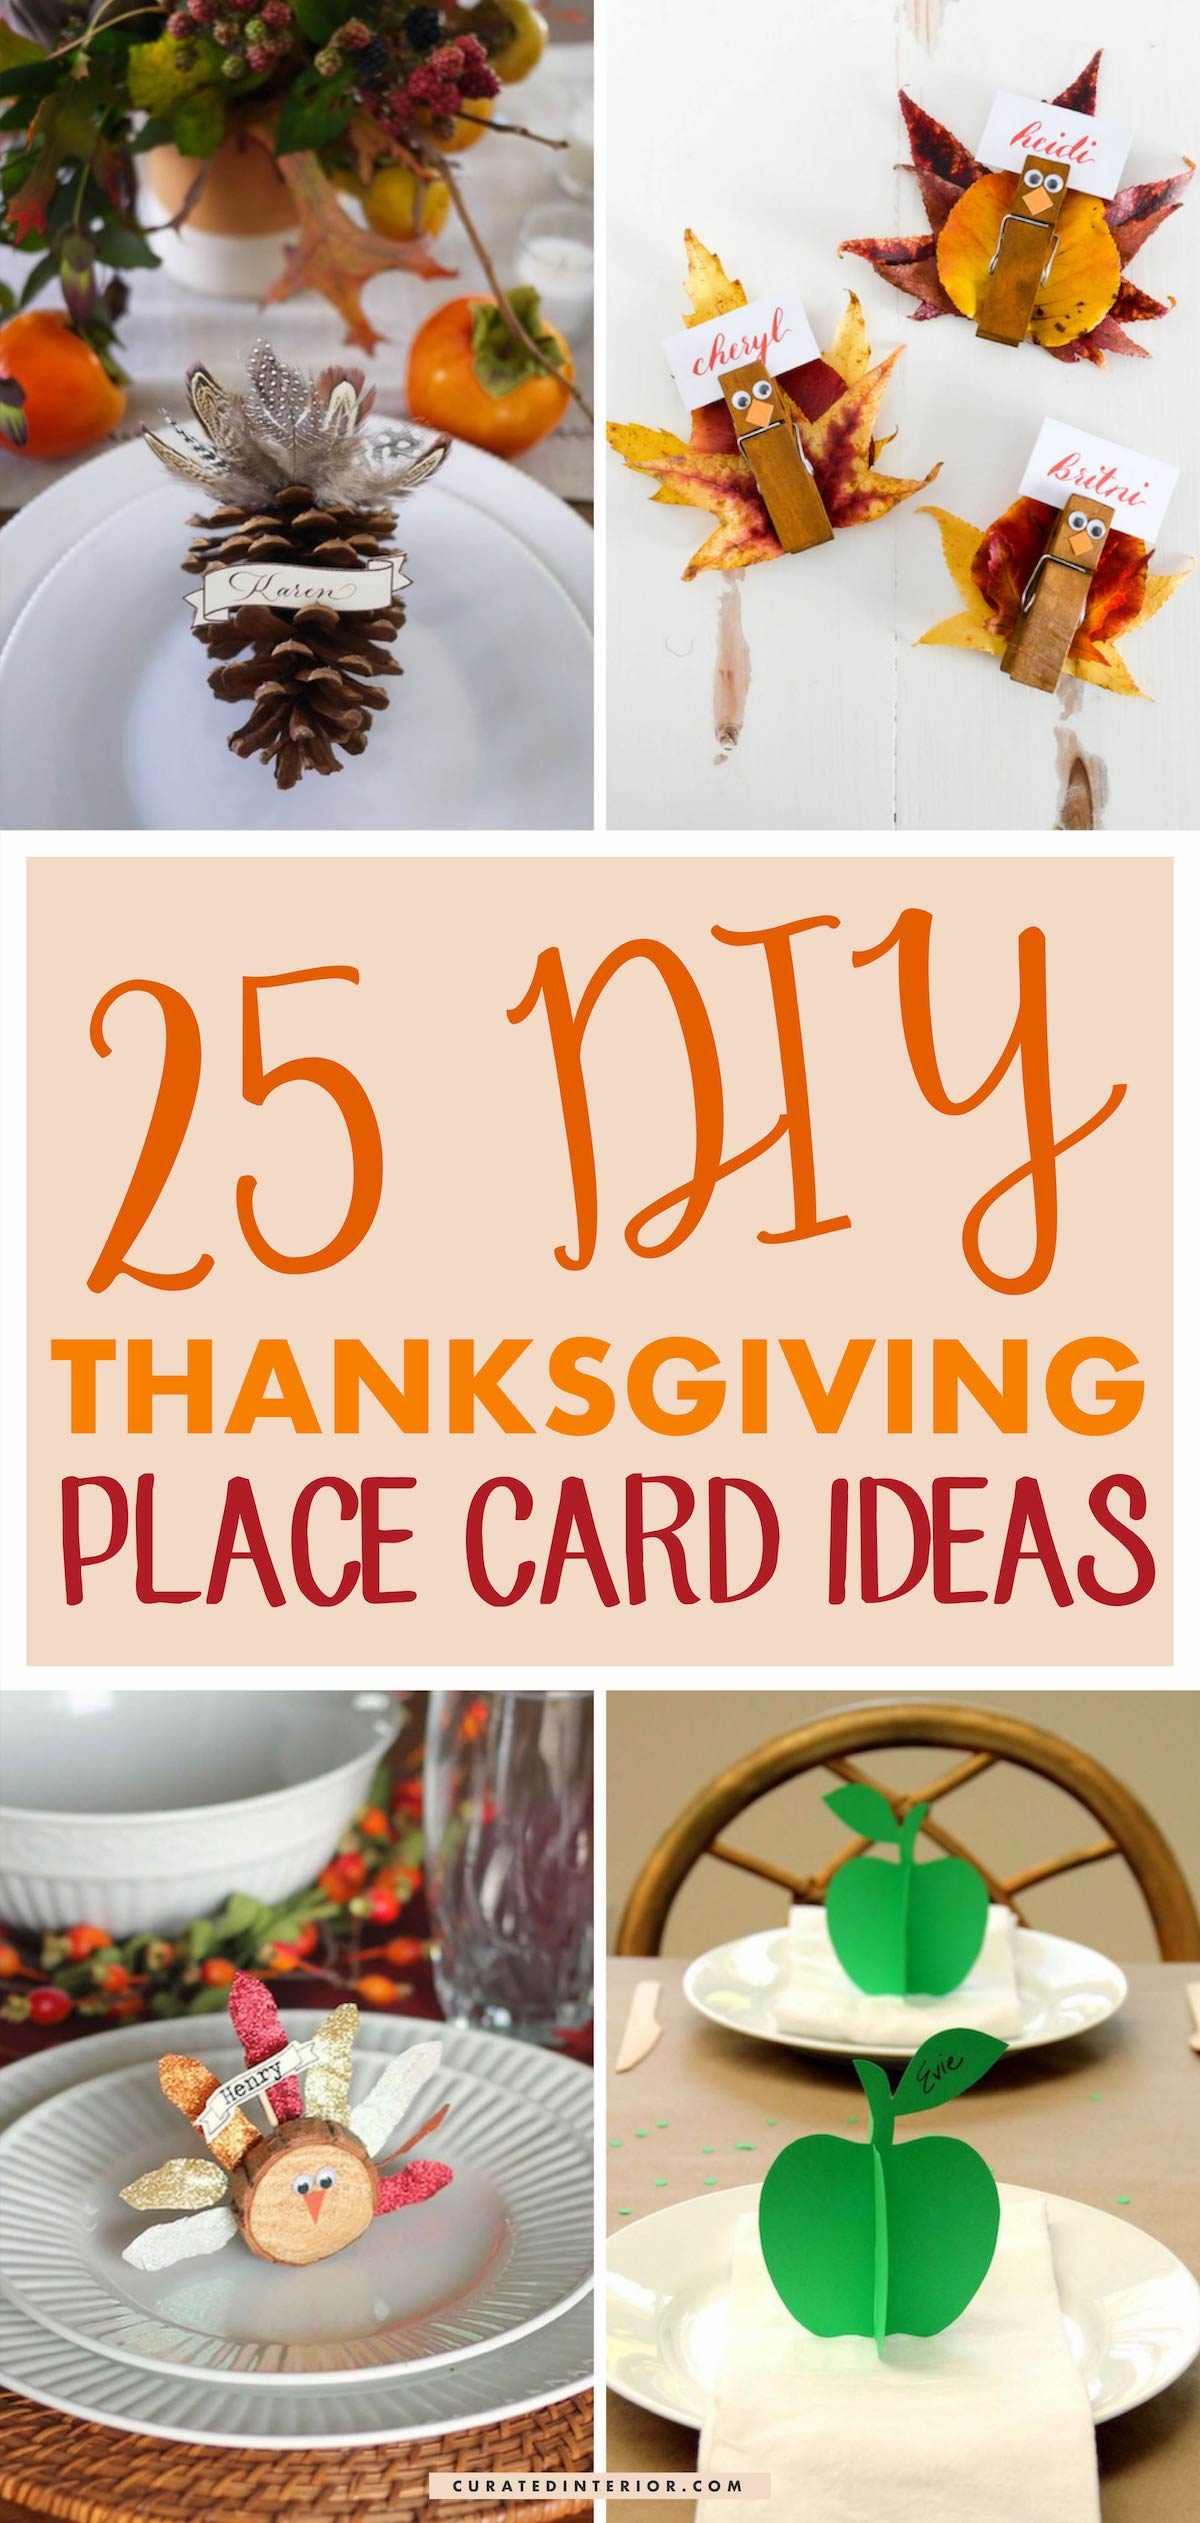 25 DIY Thanksgiving Place Card Ideas #Thanksgiving #ThanksgivingDecor #ThanksgivingTable #ThanksgivingTableDecor